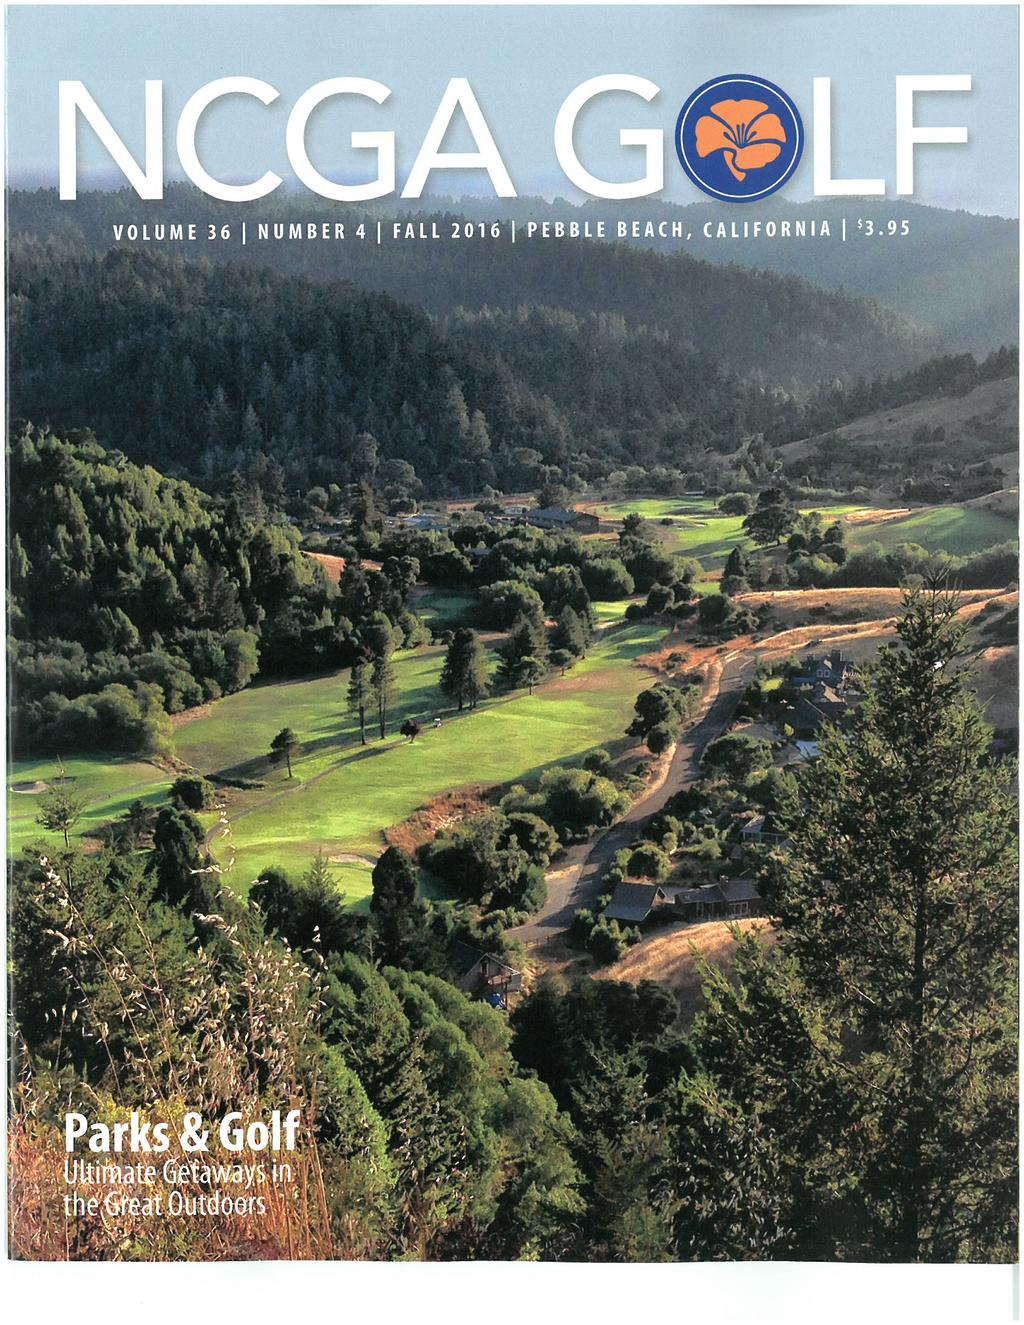 Course Rating and Handicapping Jim Cowan, Director The course rating and handicapping department provides the best USGA-authorized handicap service and support available, and